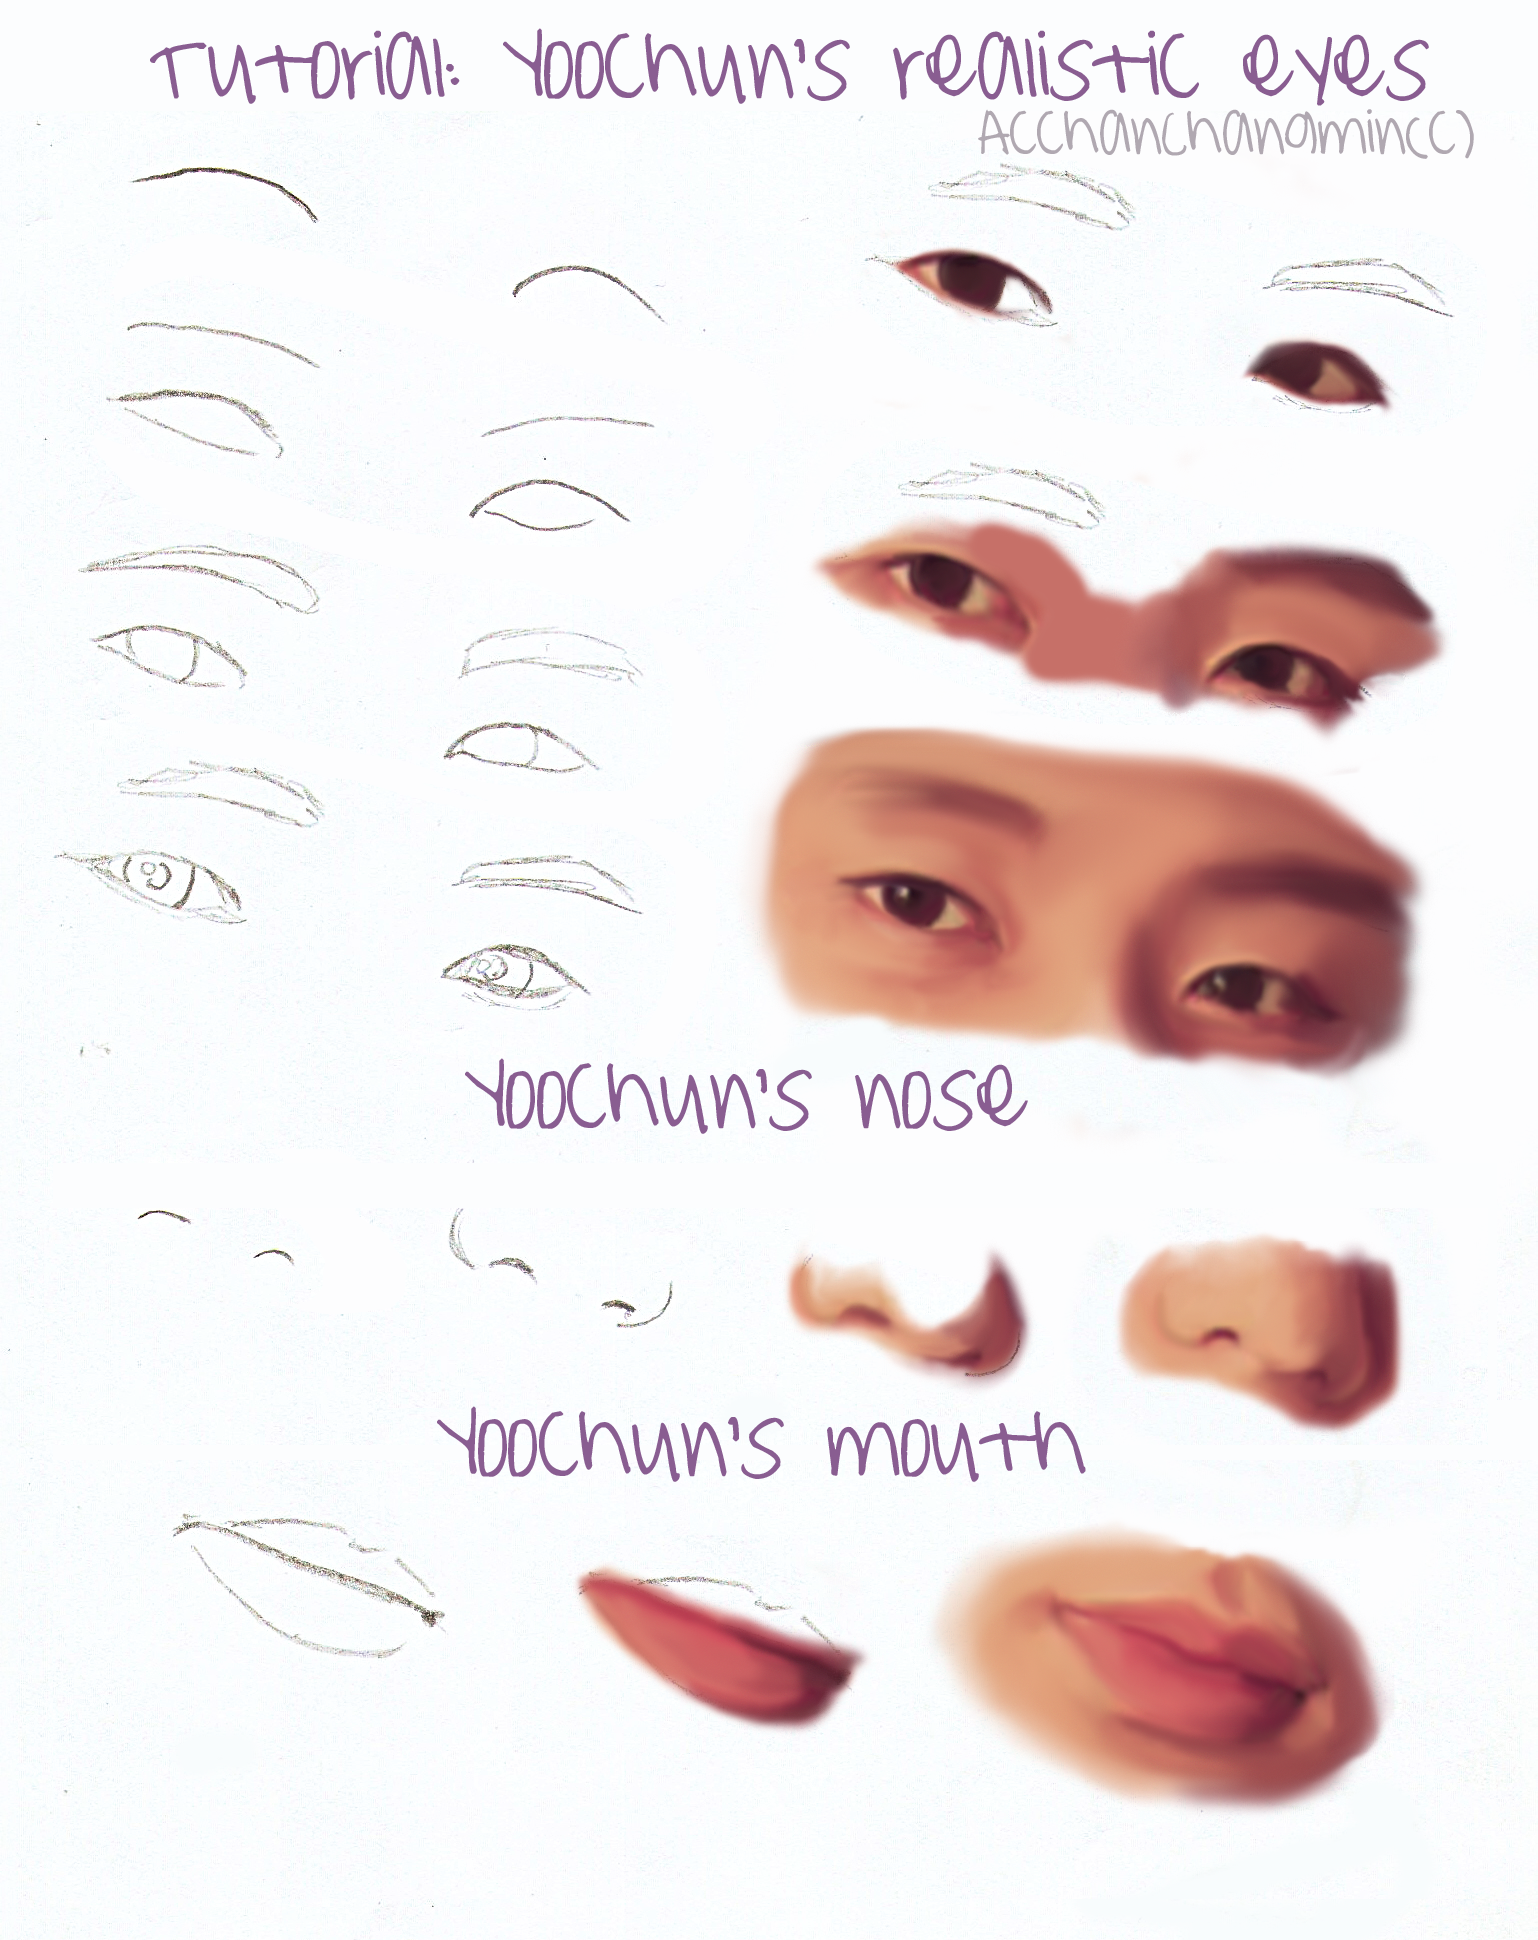 Tutorial: Yoochun's details by AcchanChangmin